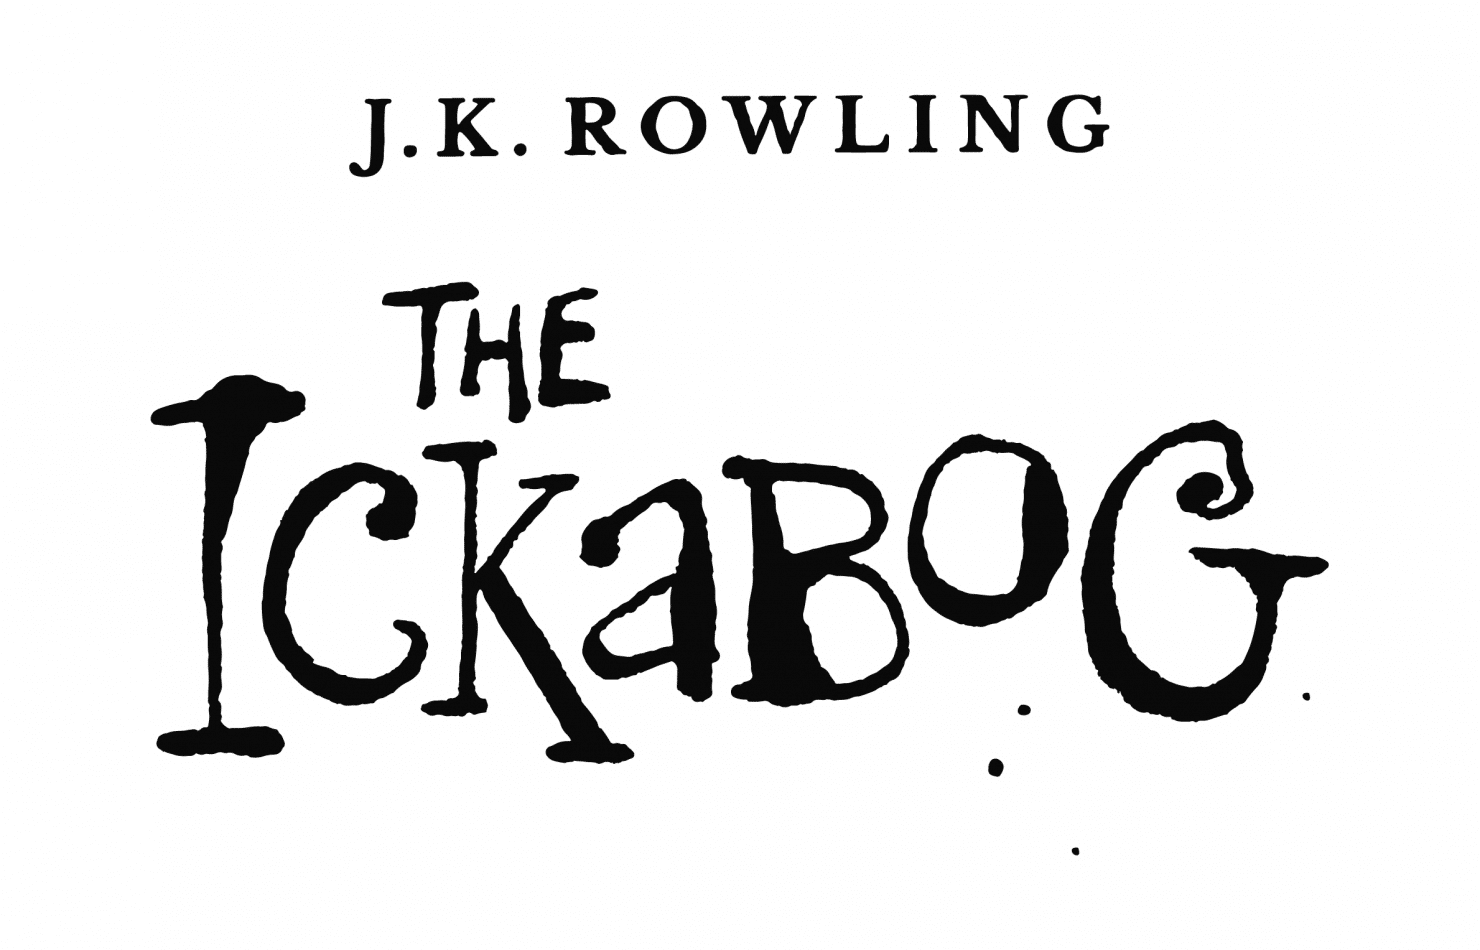 J.K. Rowling sharing new story 'The Ickabog' online for free